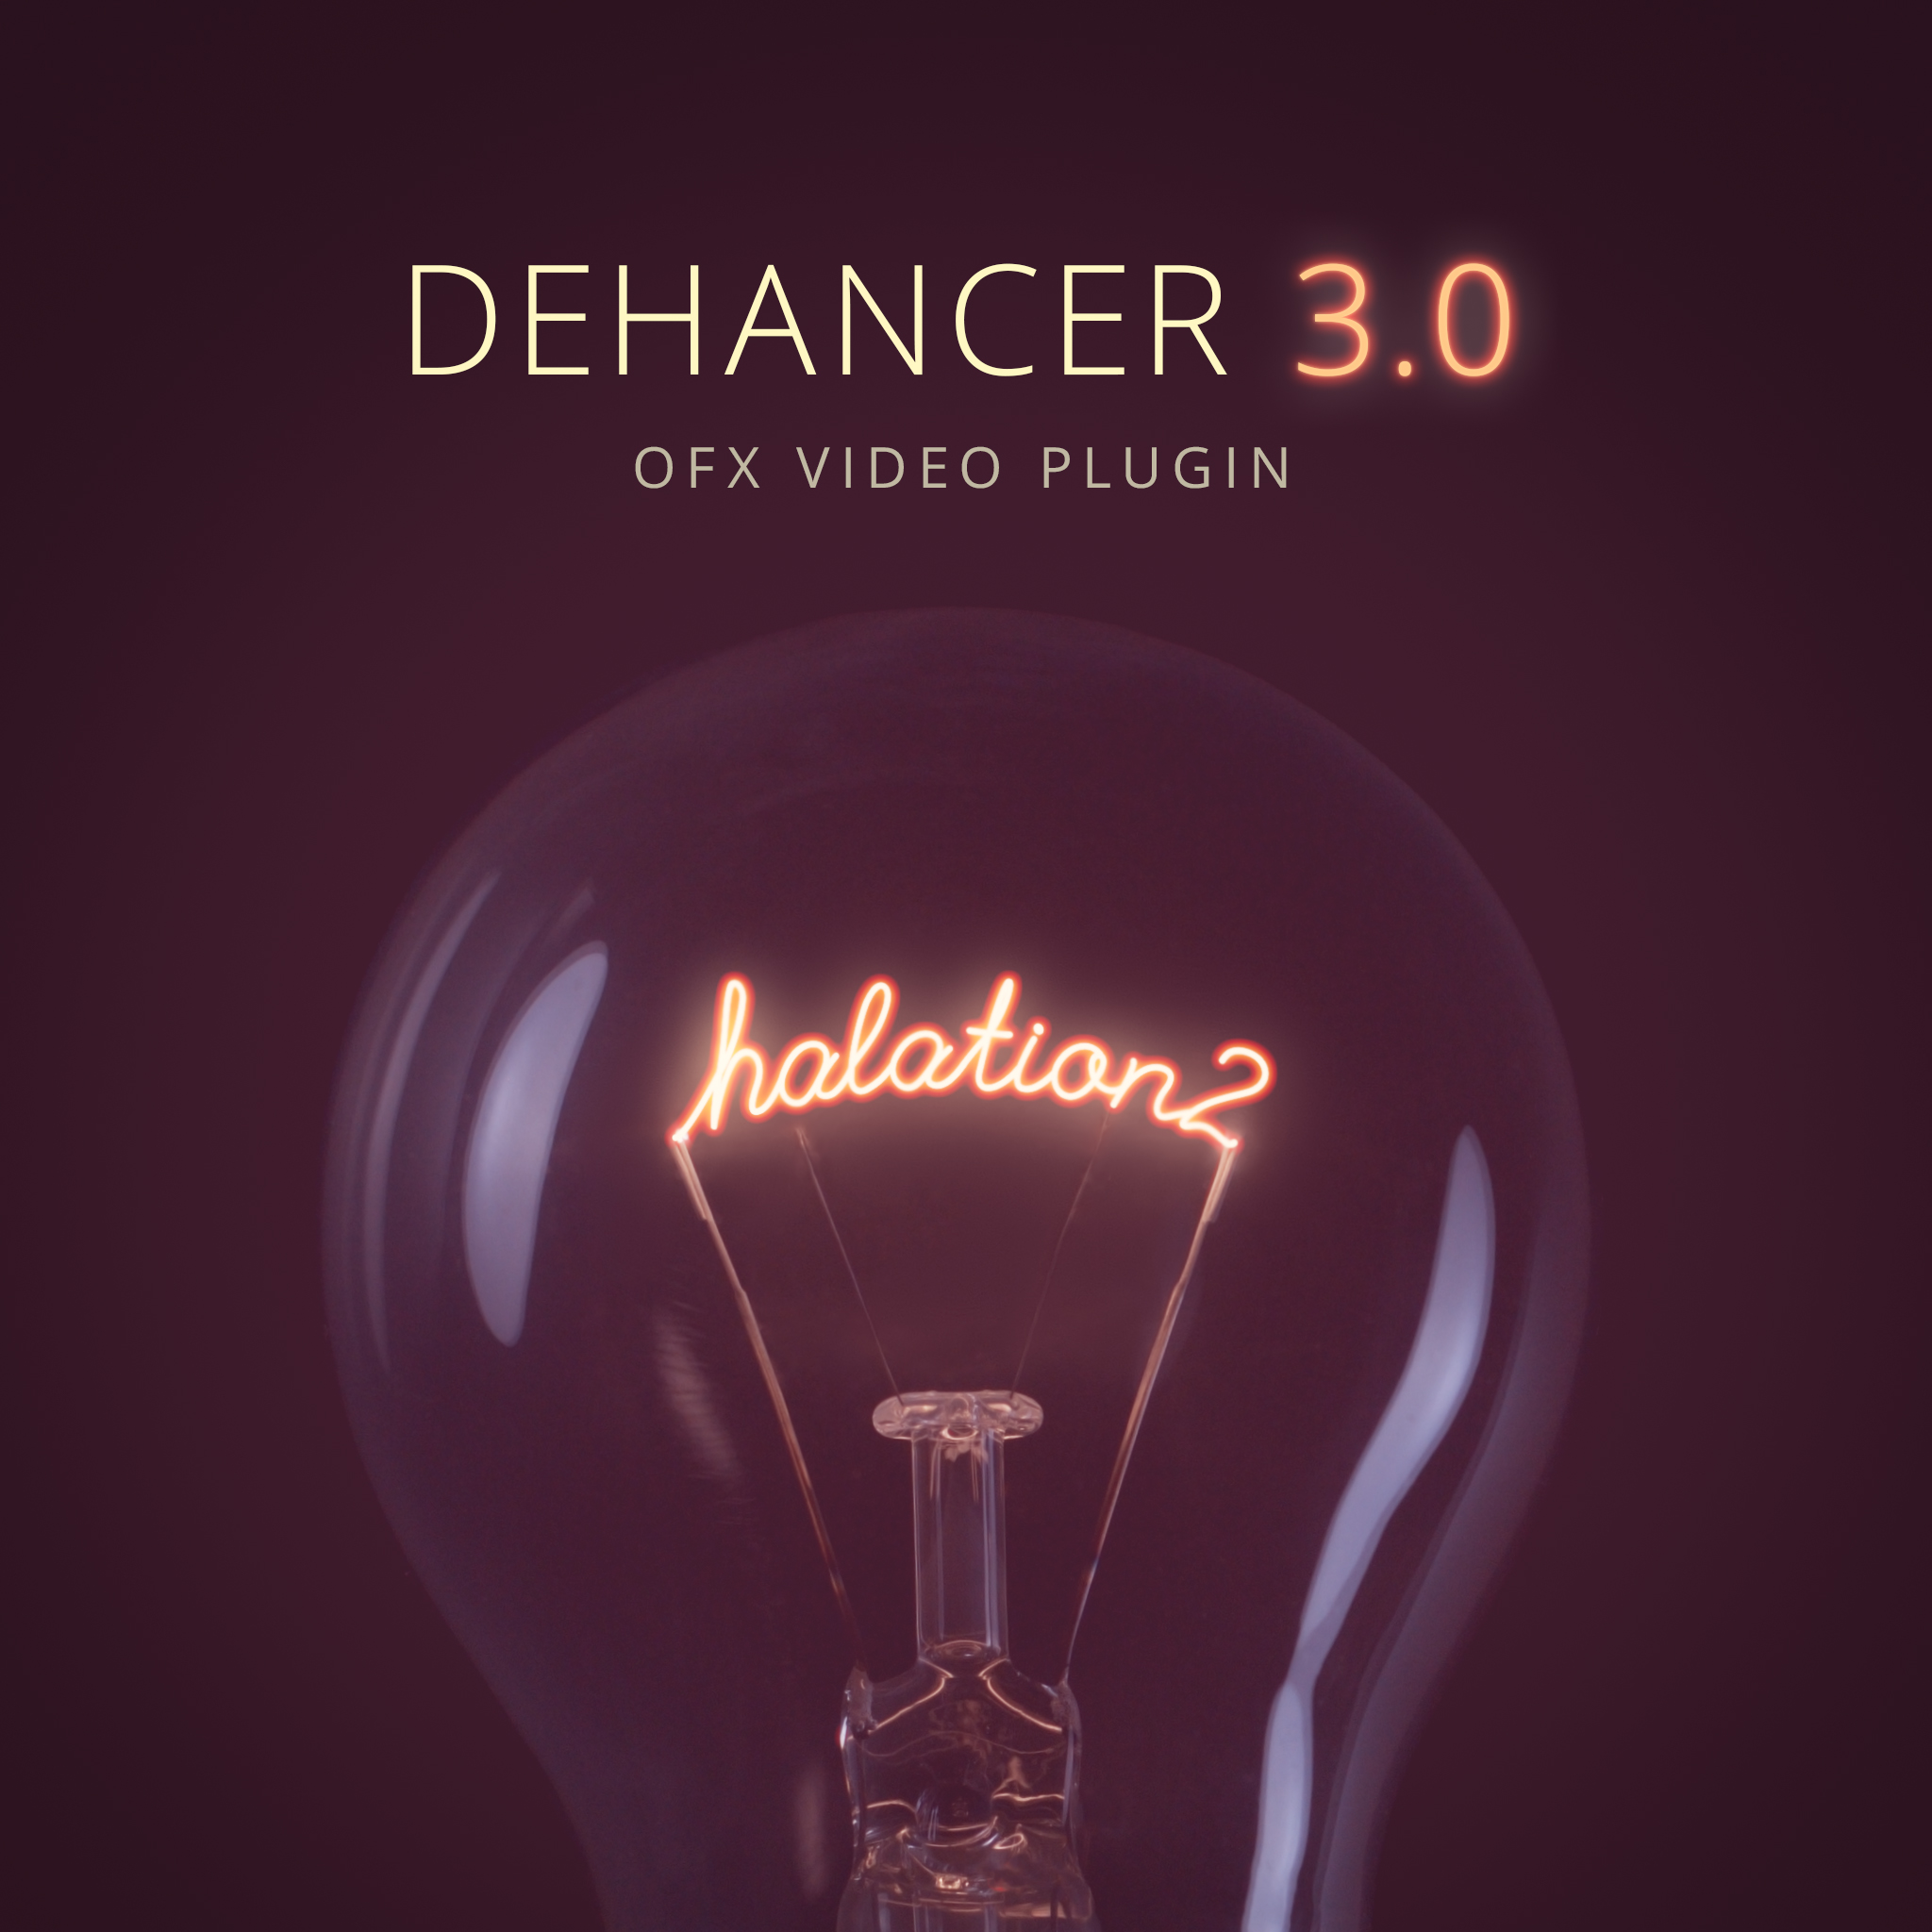 Dehancer 3.0 Halation